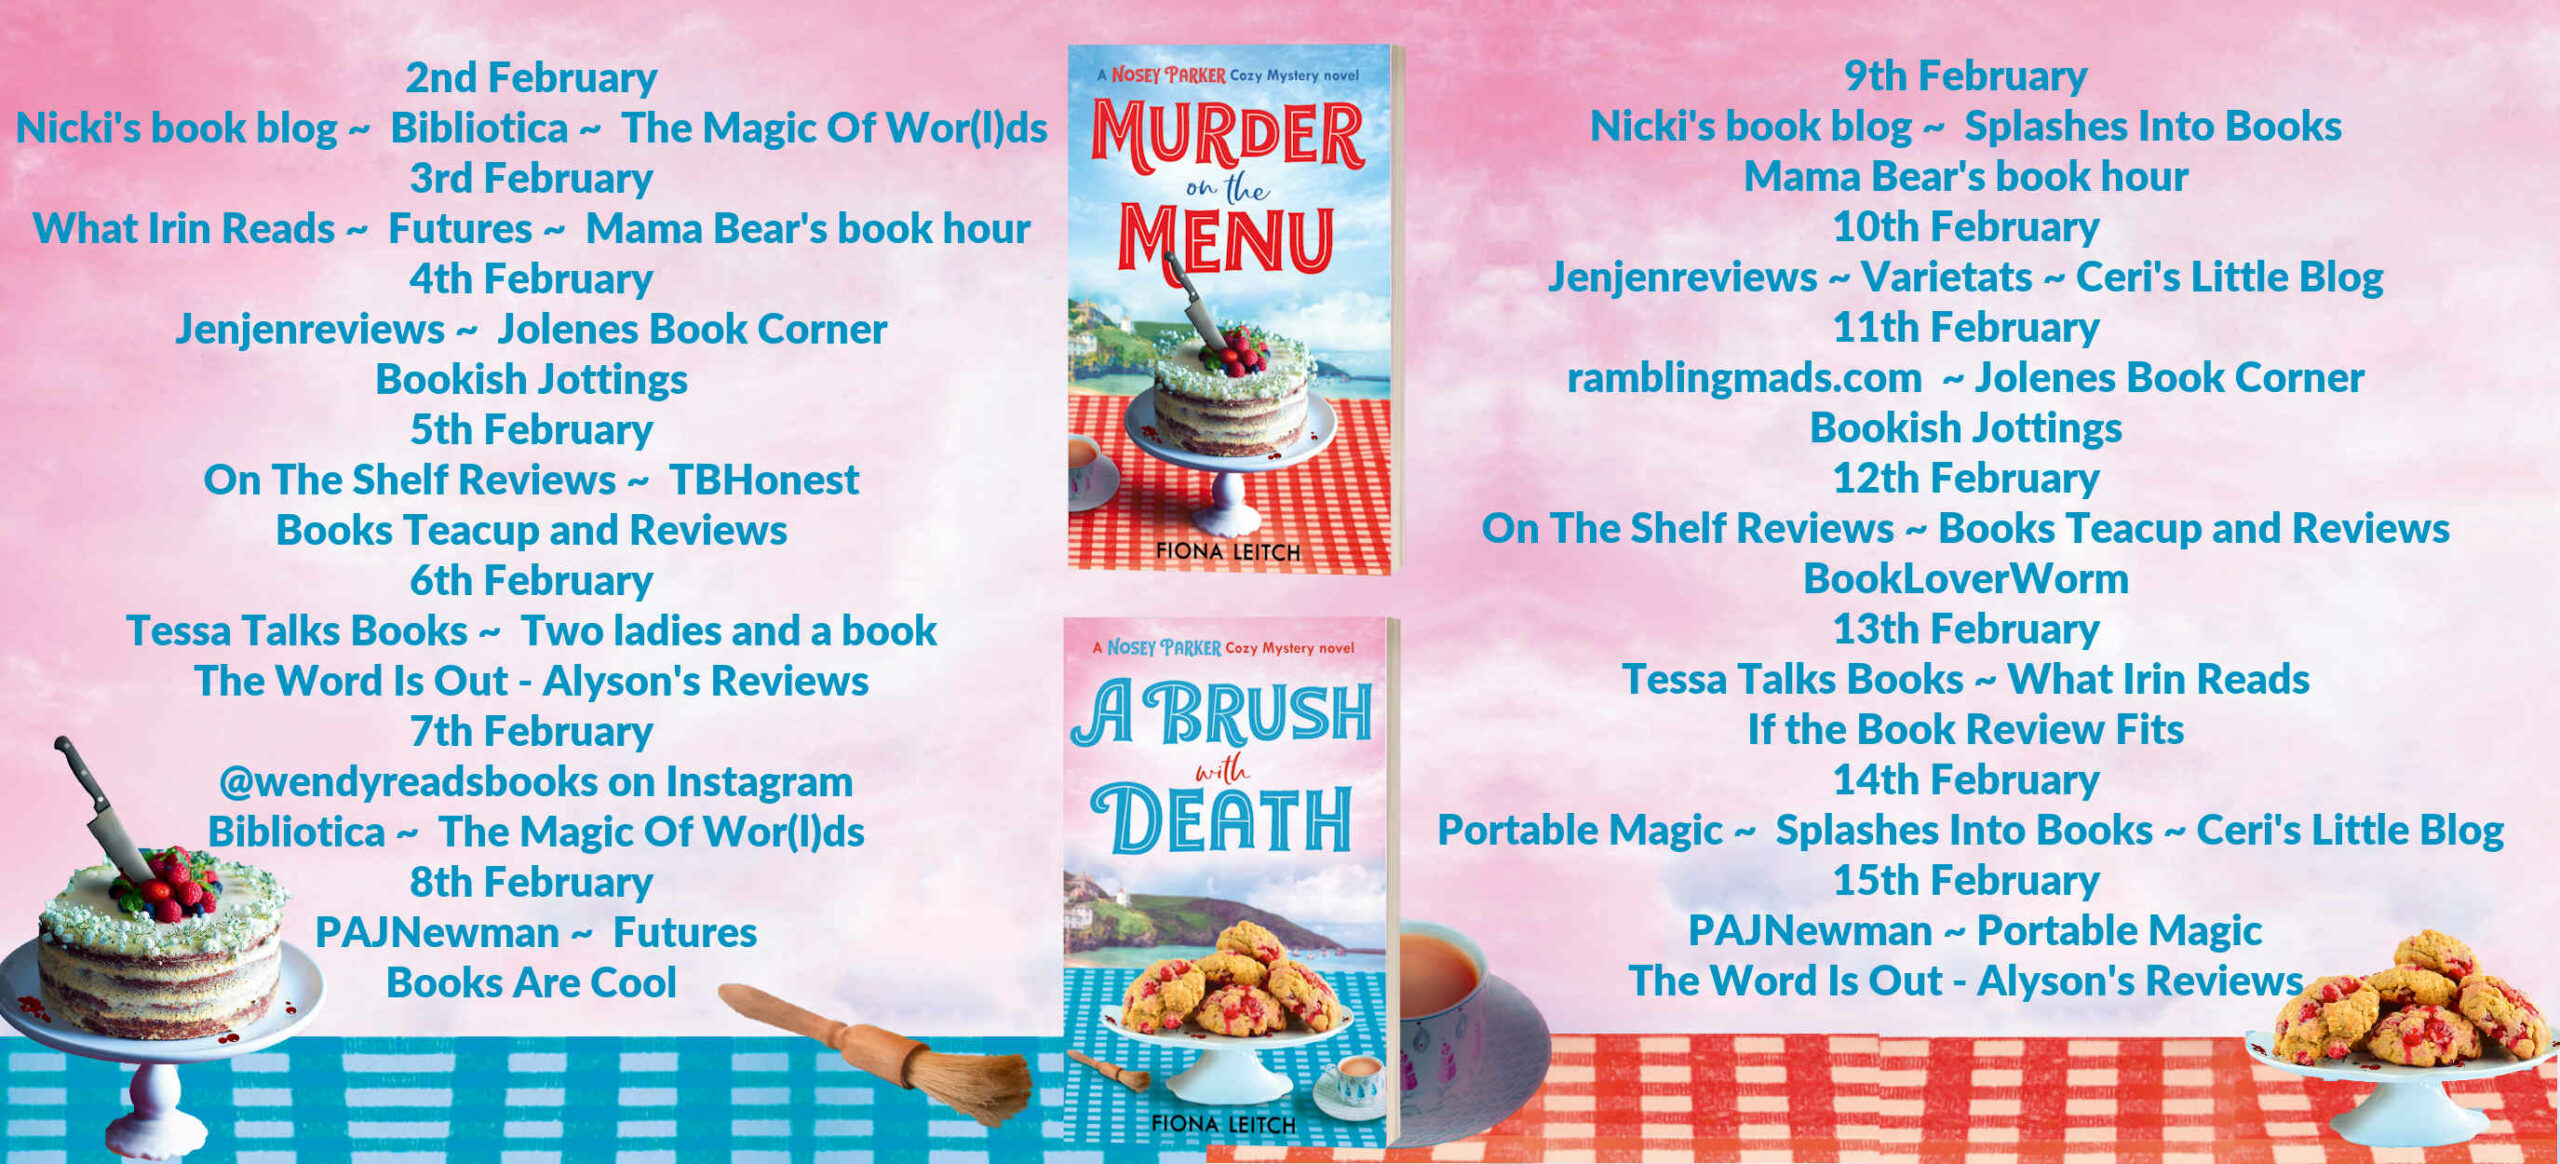 Review: A Brush with Death, by Fiona Leitch